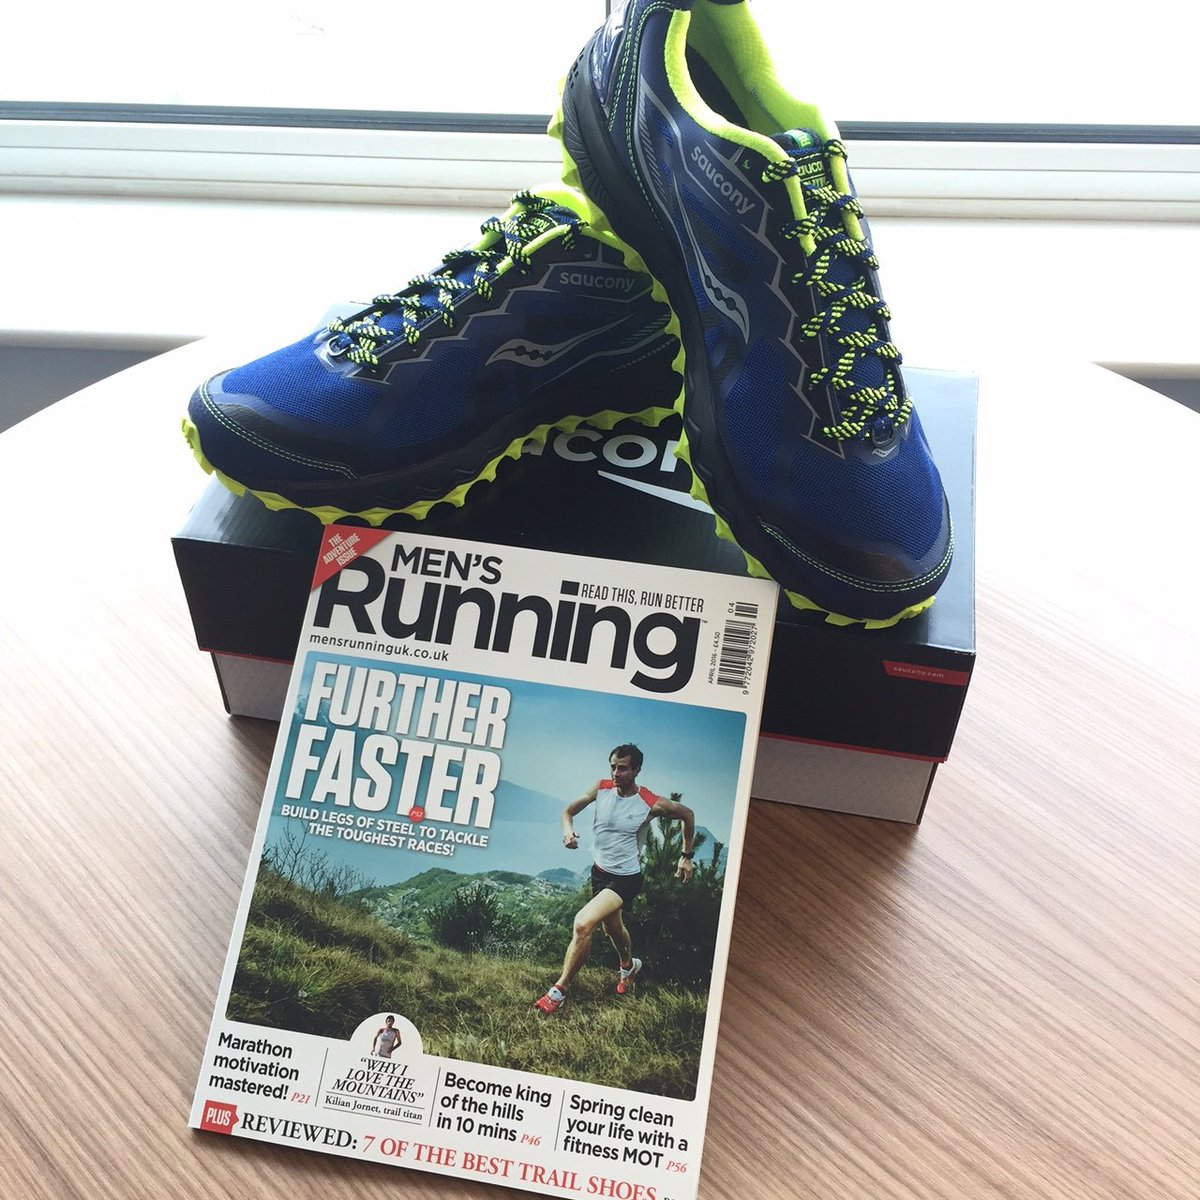 17c4ea40cf RT  Mensrunninguk  to win a pair of  saucony Peregrine 6 trail shoes worth  over £100